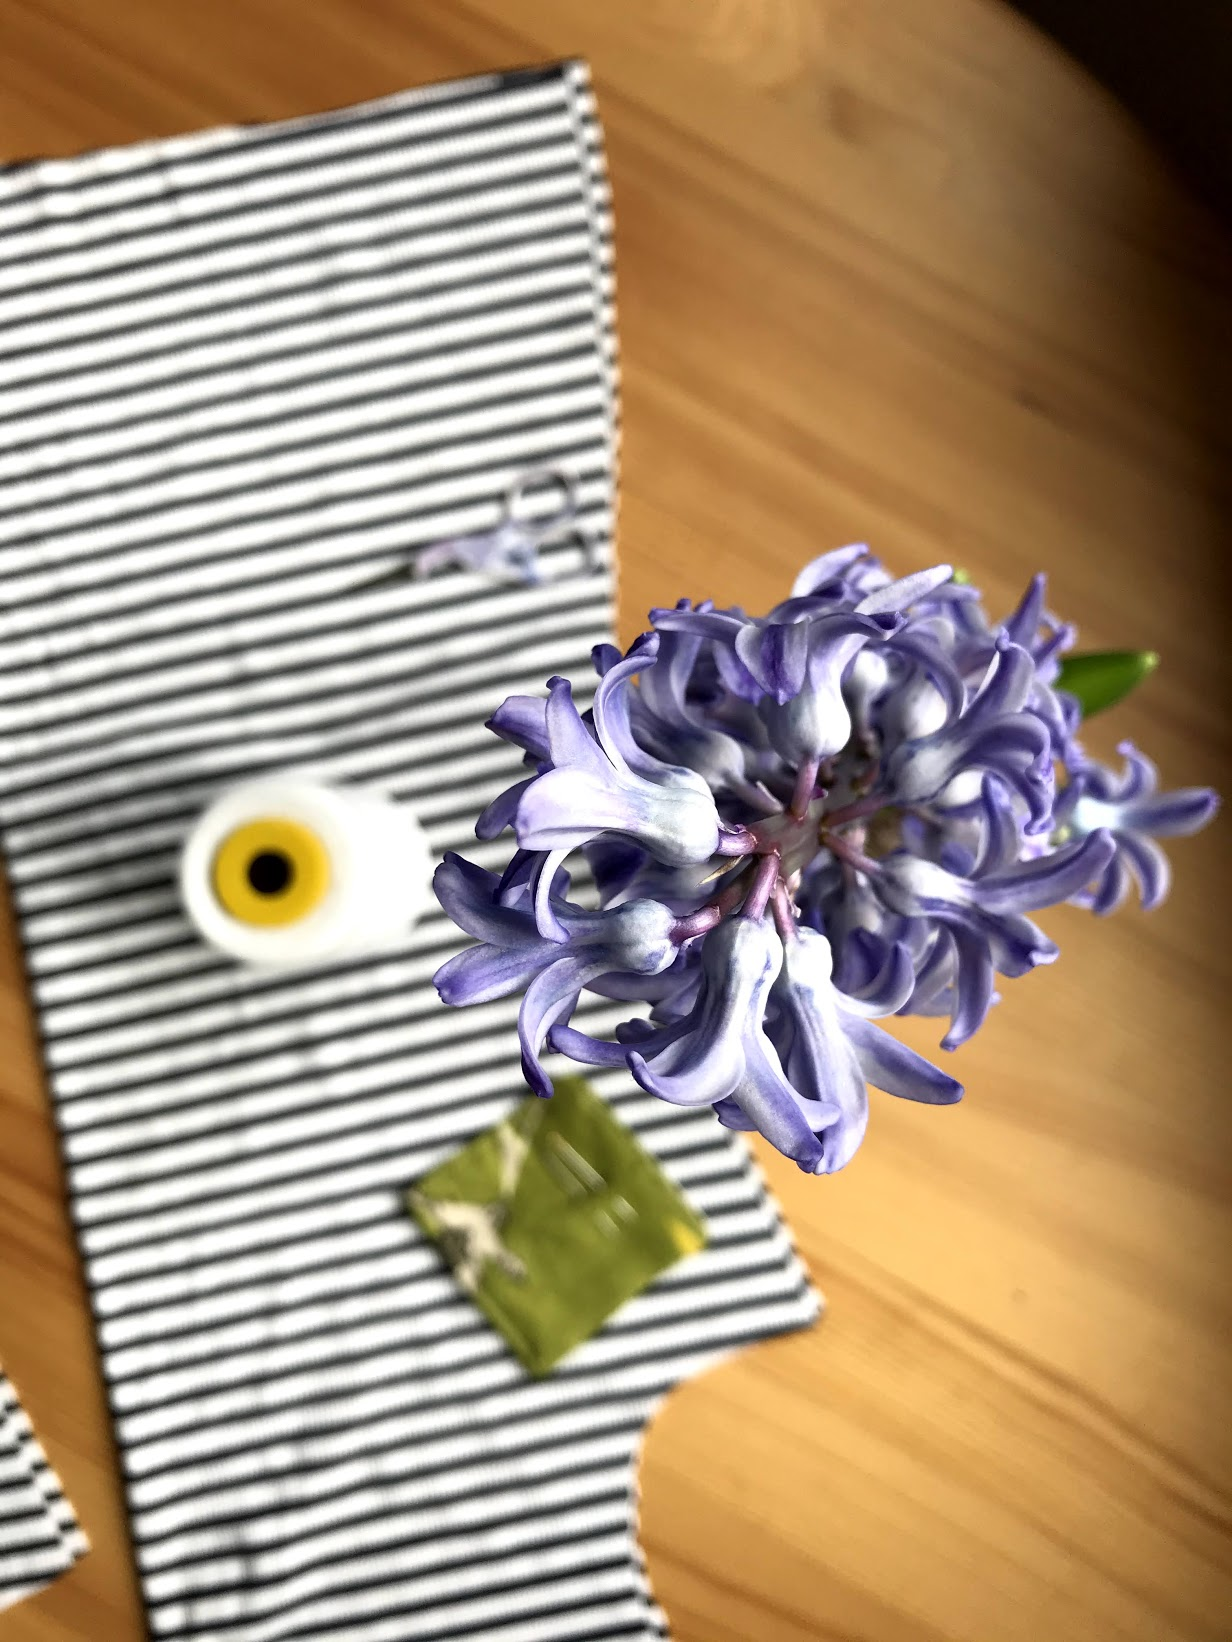 striped fabric with thread and purple hyacinth